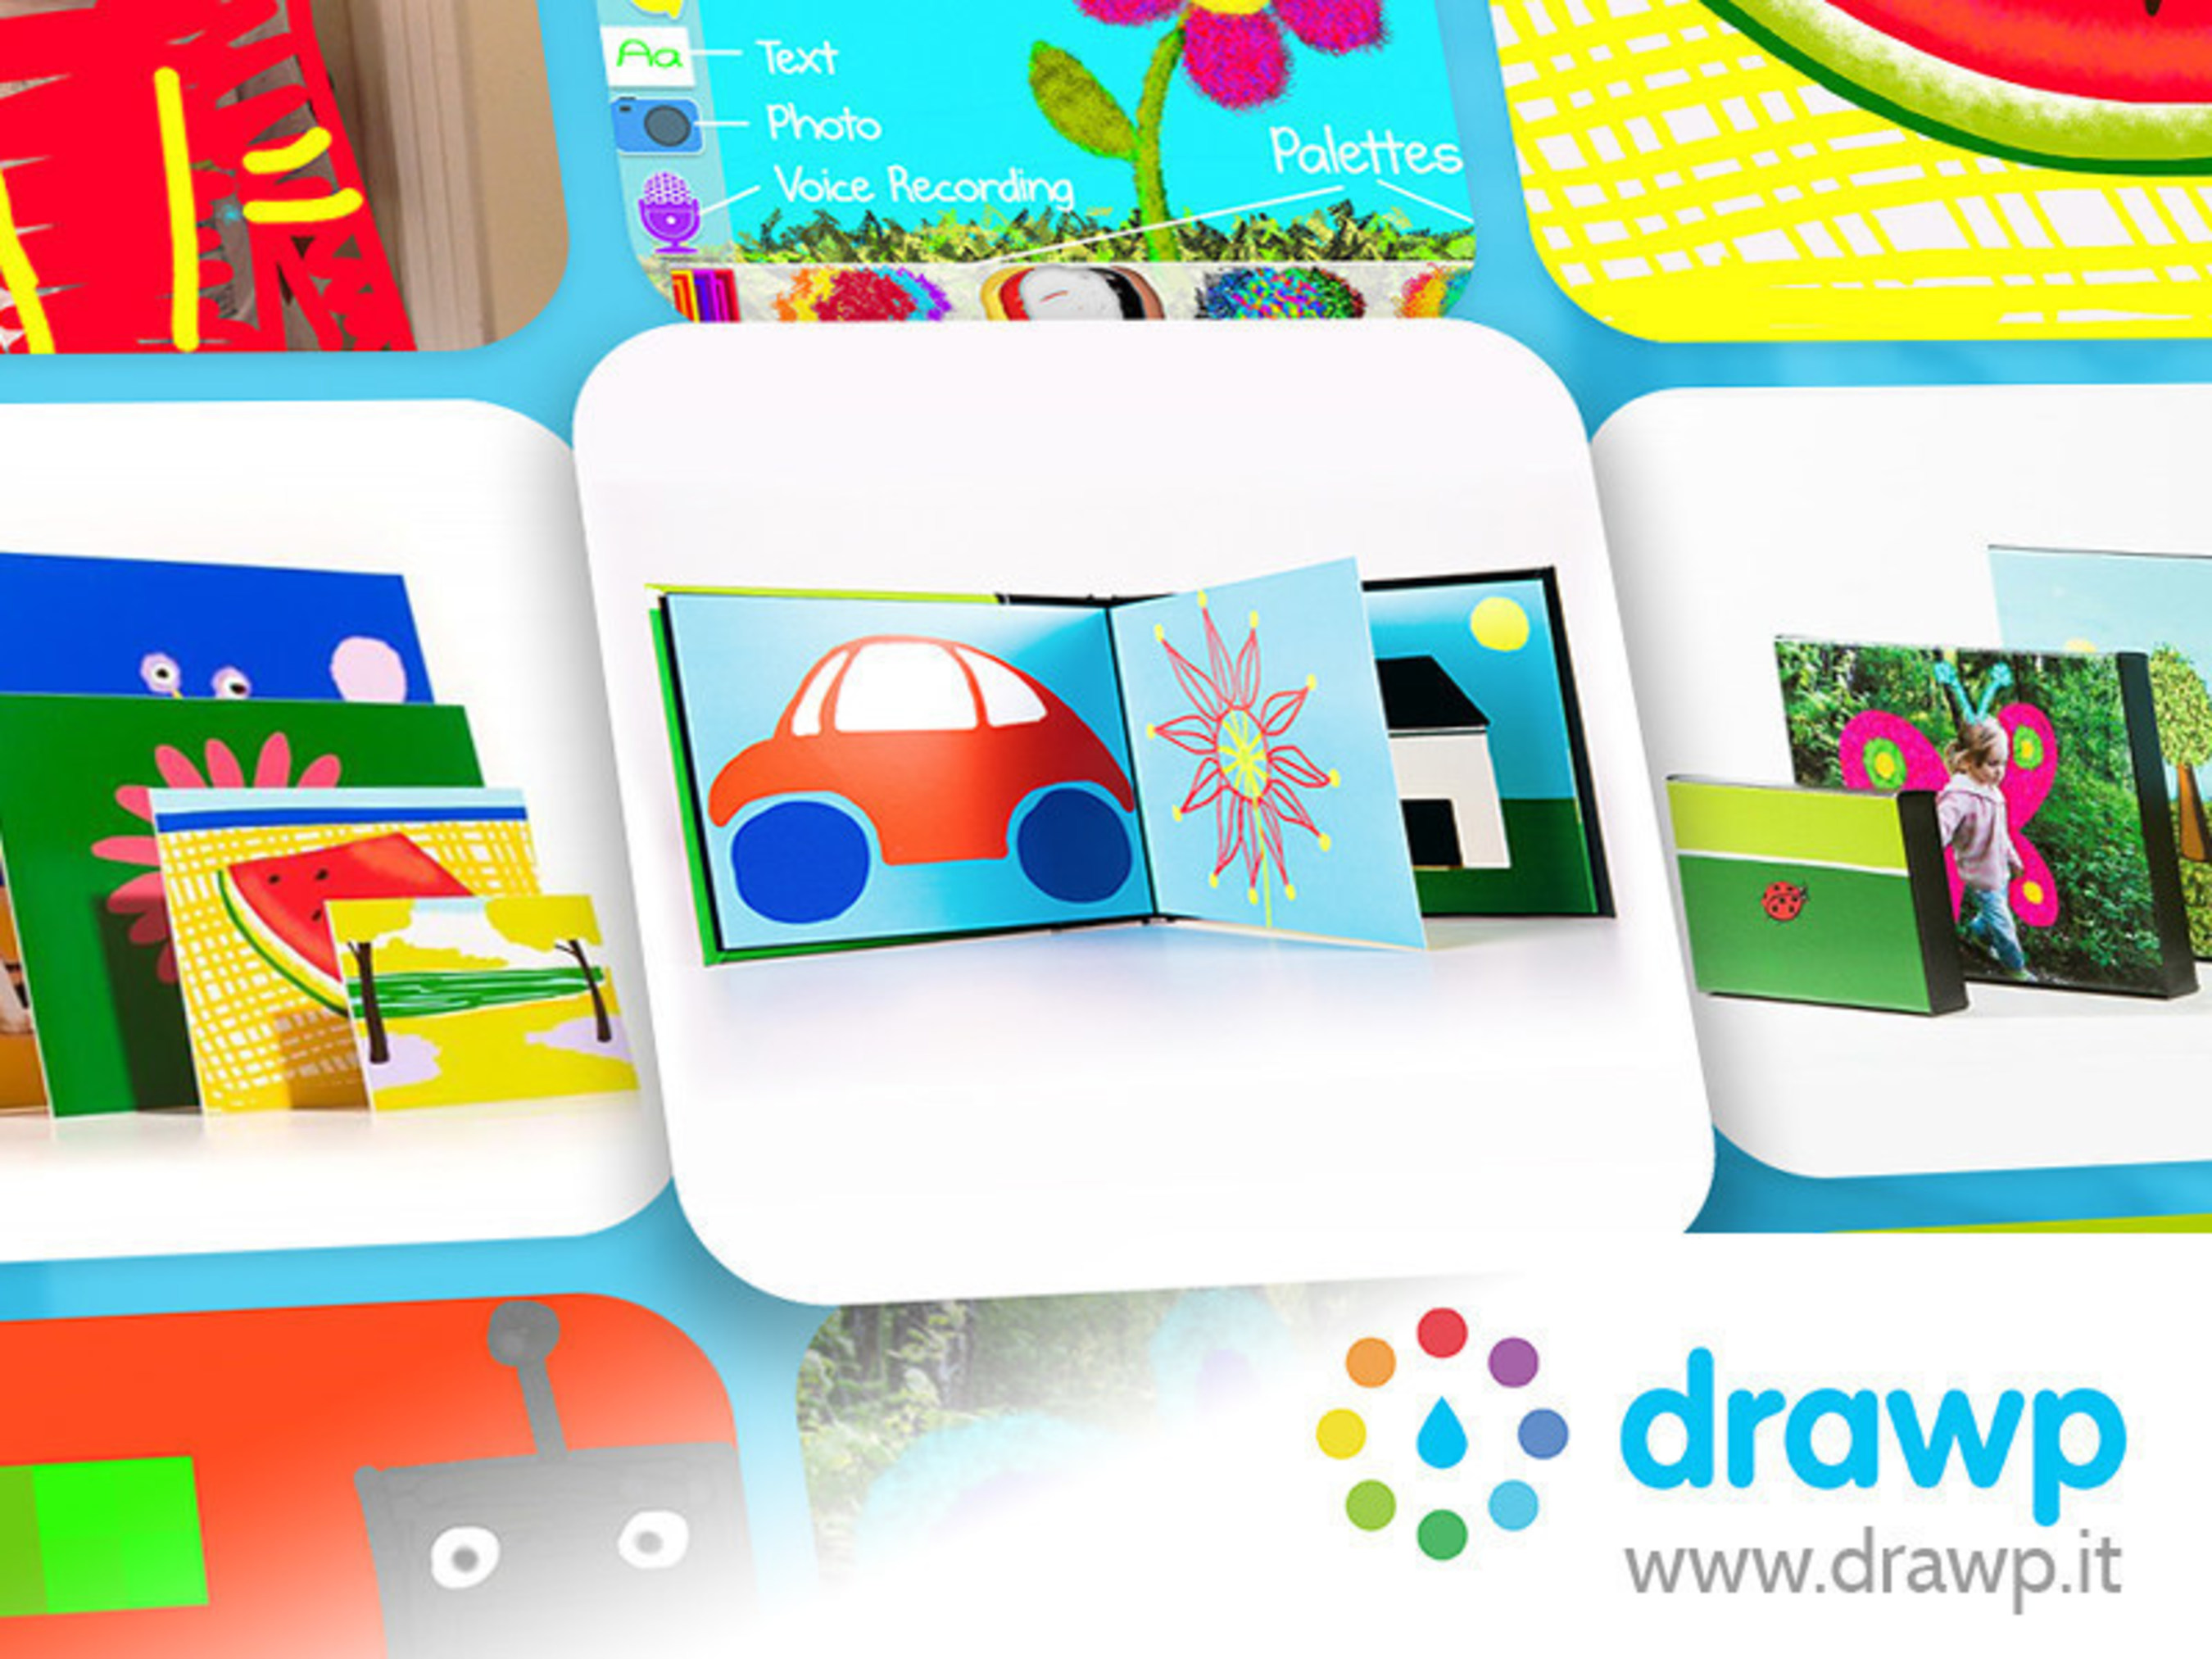 Award-winning Art App Drawp Adds Premier Printing